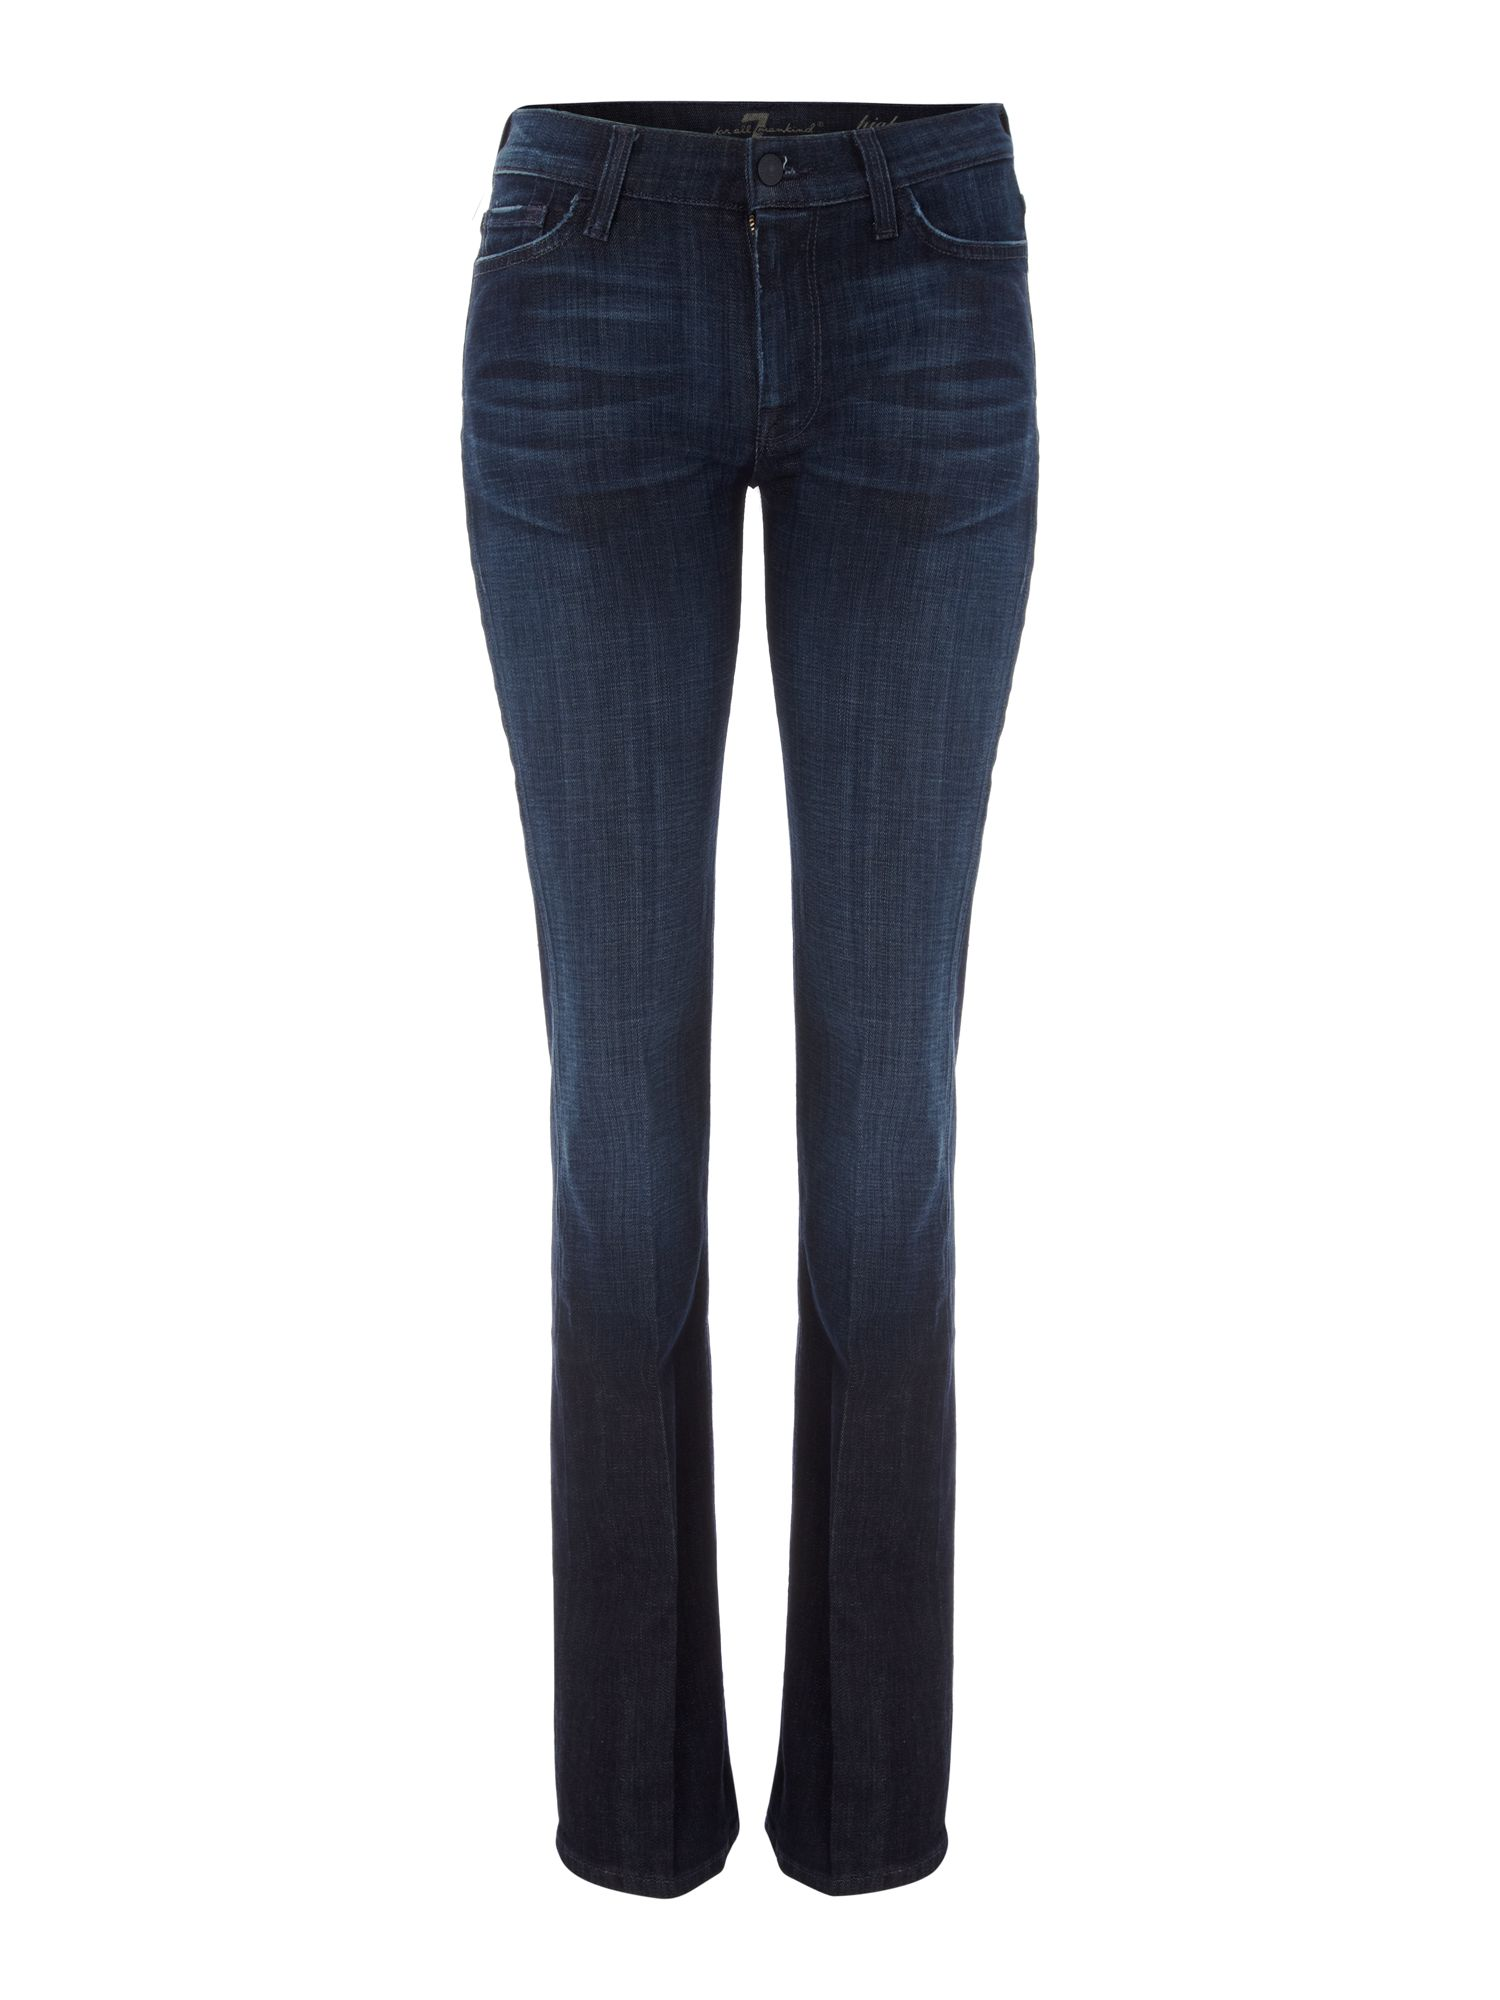 High-waist bootcut jeans in Los Angeles Dark